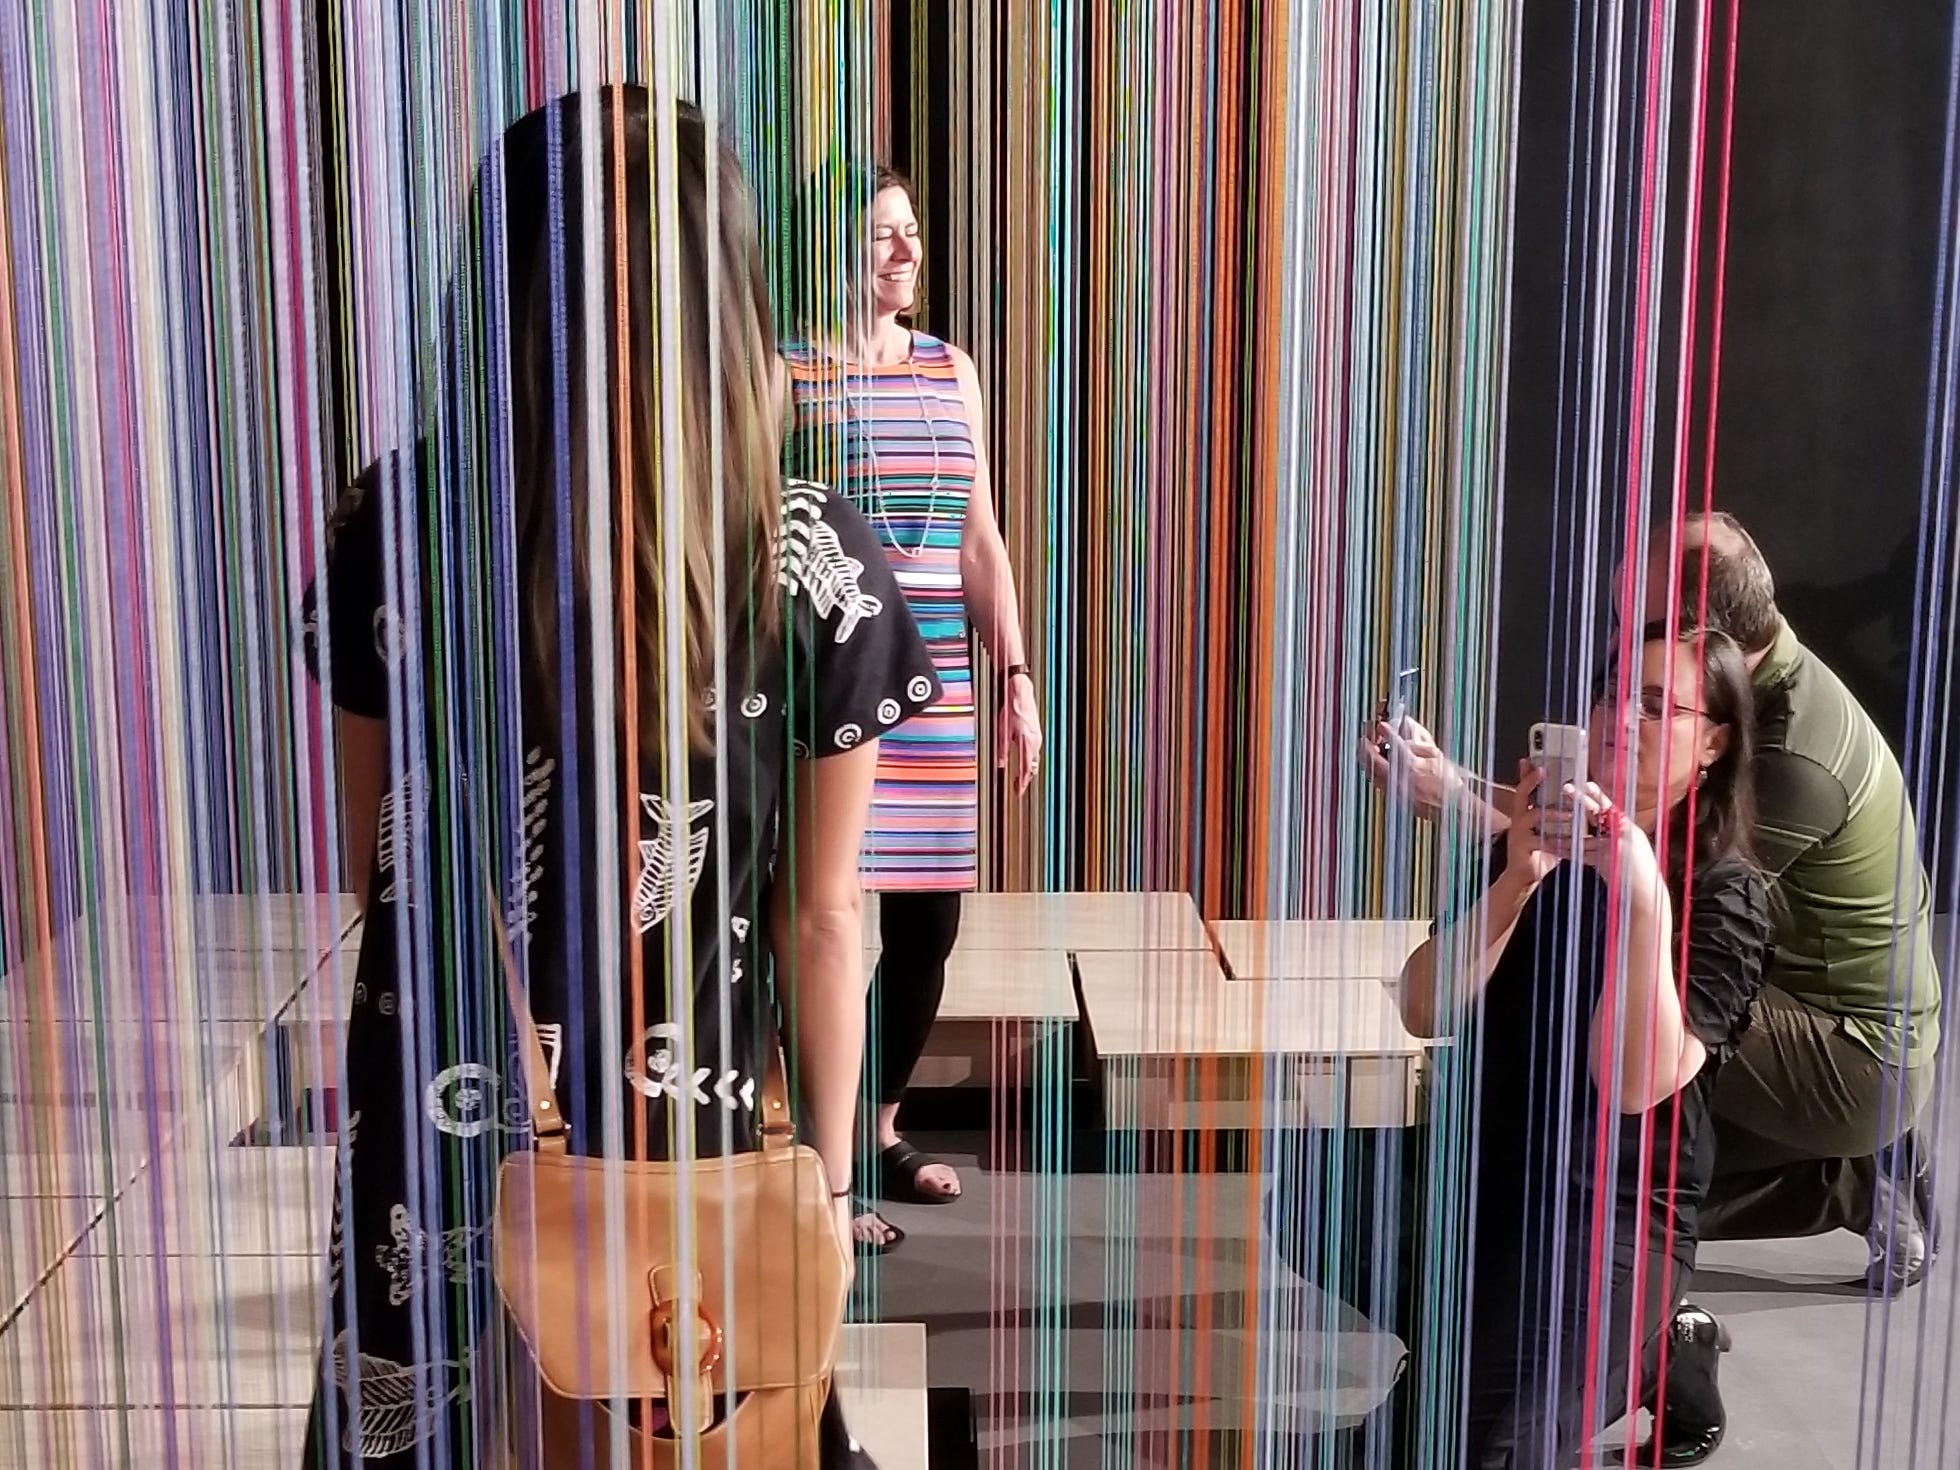 """""""Sweet Spot"""" by Shawn Causey and Mark Daniell is part of Wonderspaces Arizona, an immersive art show open April through mid-July 2019 at Scottsdale Fashion Square."""